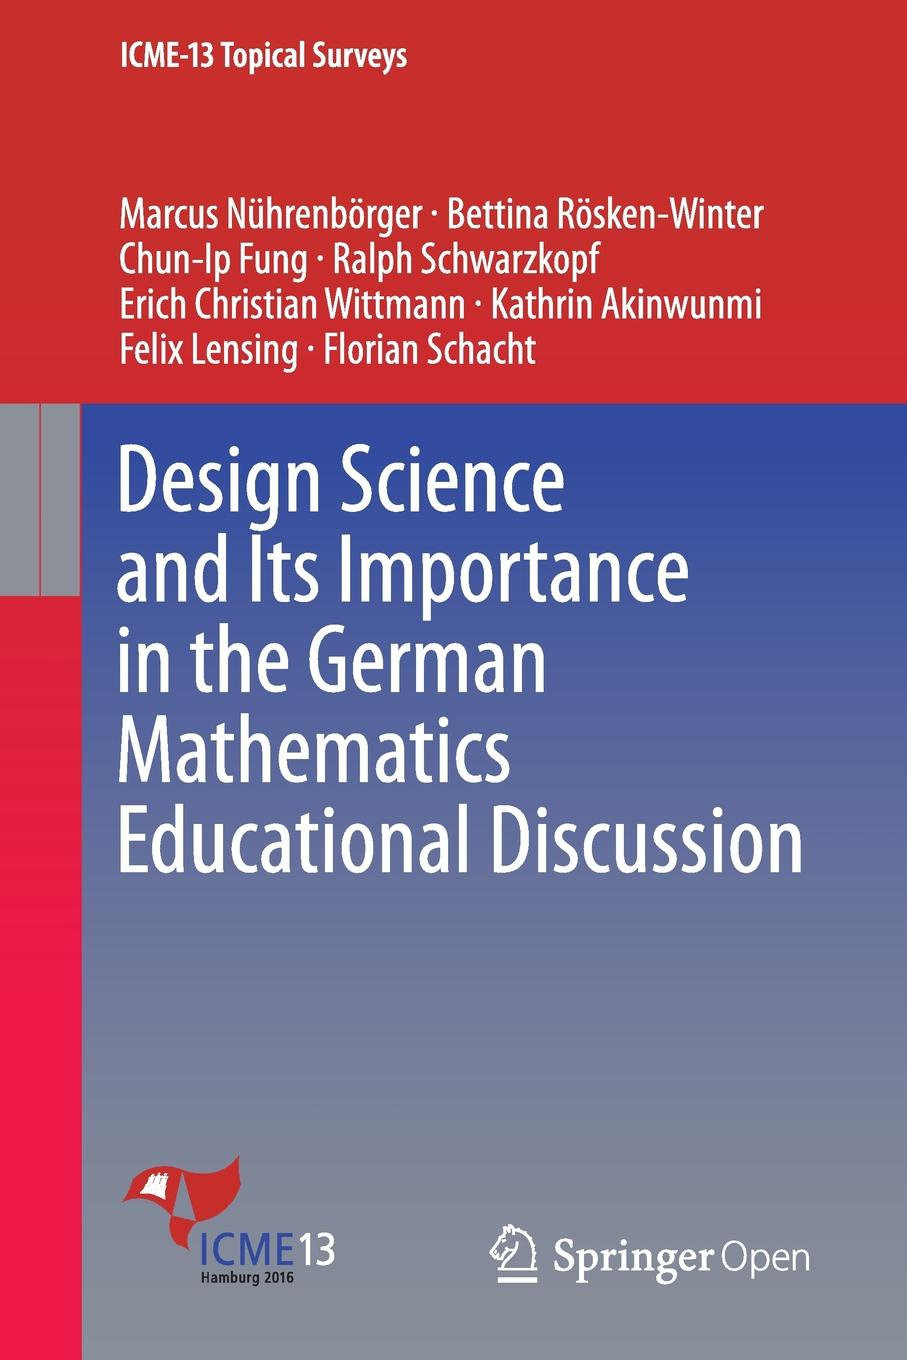 Marcus Nührenbörger, Bettina Rösken-Winter, Chun Ip Fung Design Science and Its Importance in the German Mathematics Educational Discussion mathematics and special educational needs